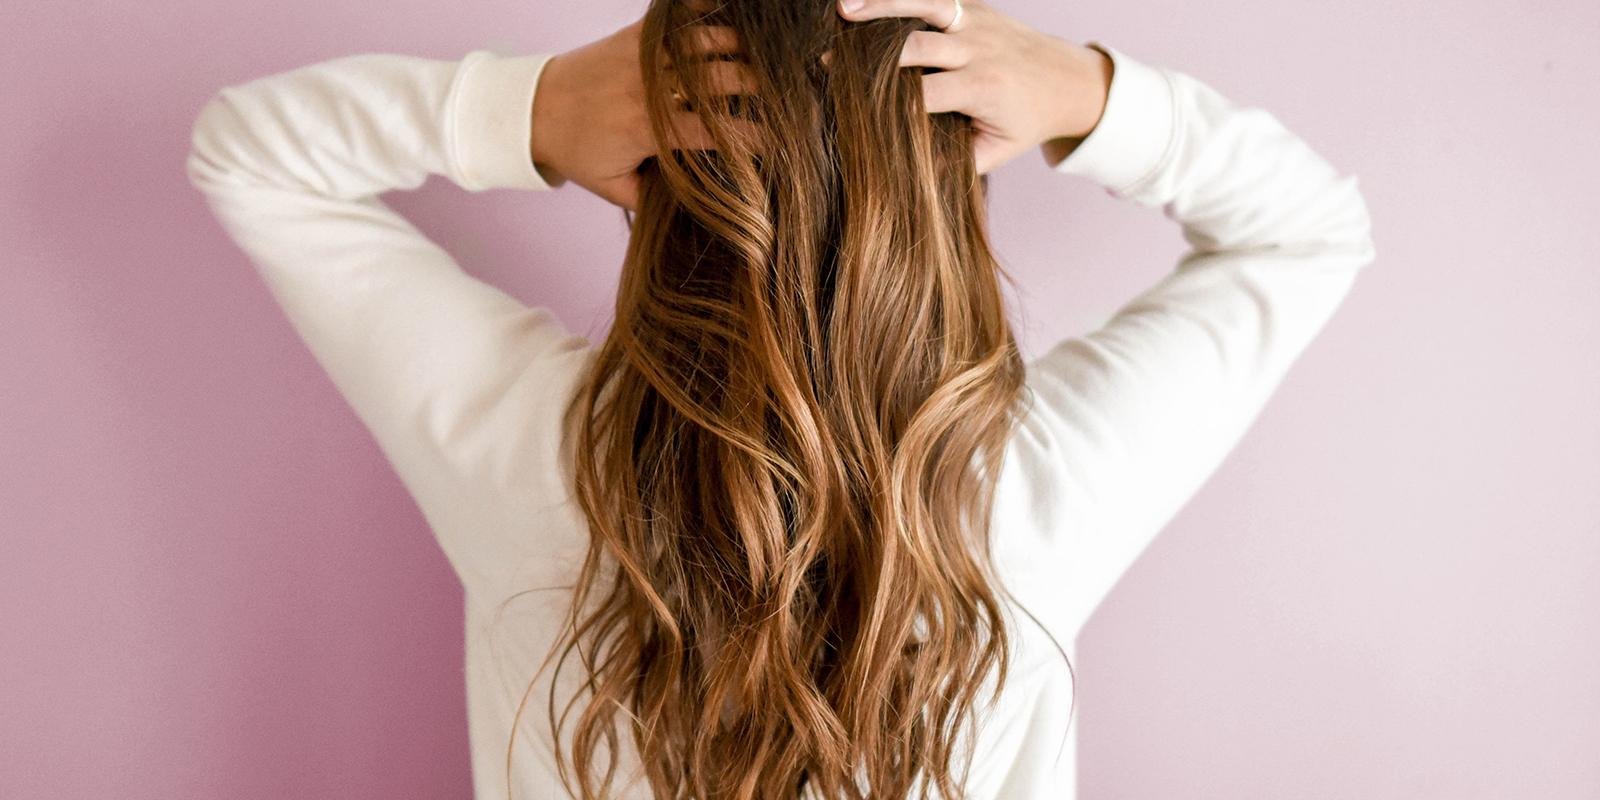 5 hair hacks for gorgeous hair